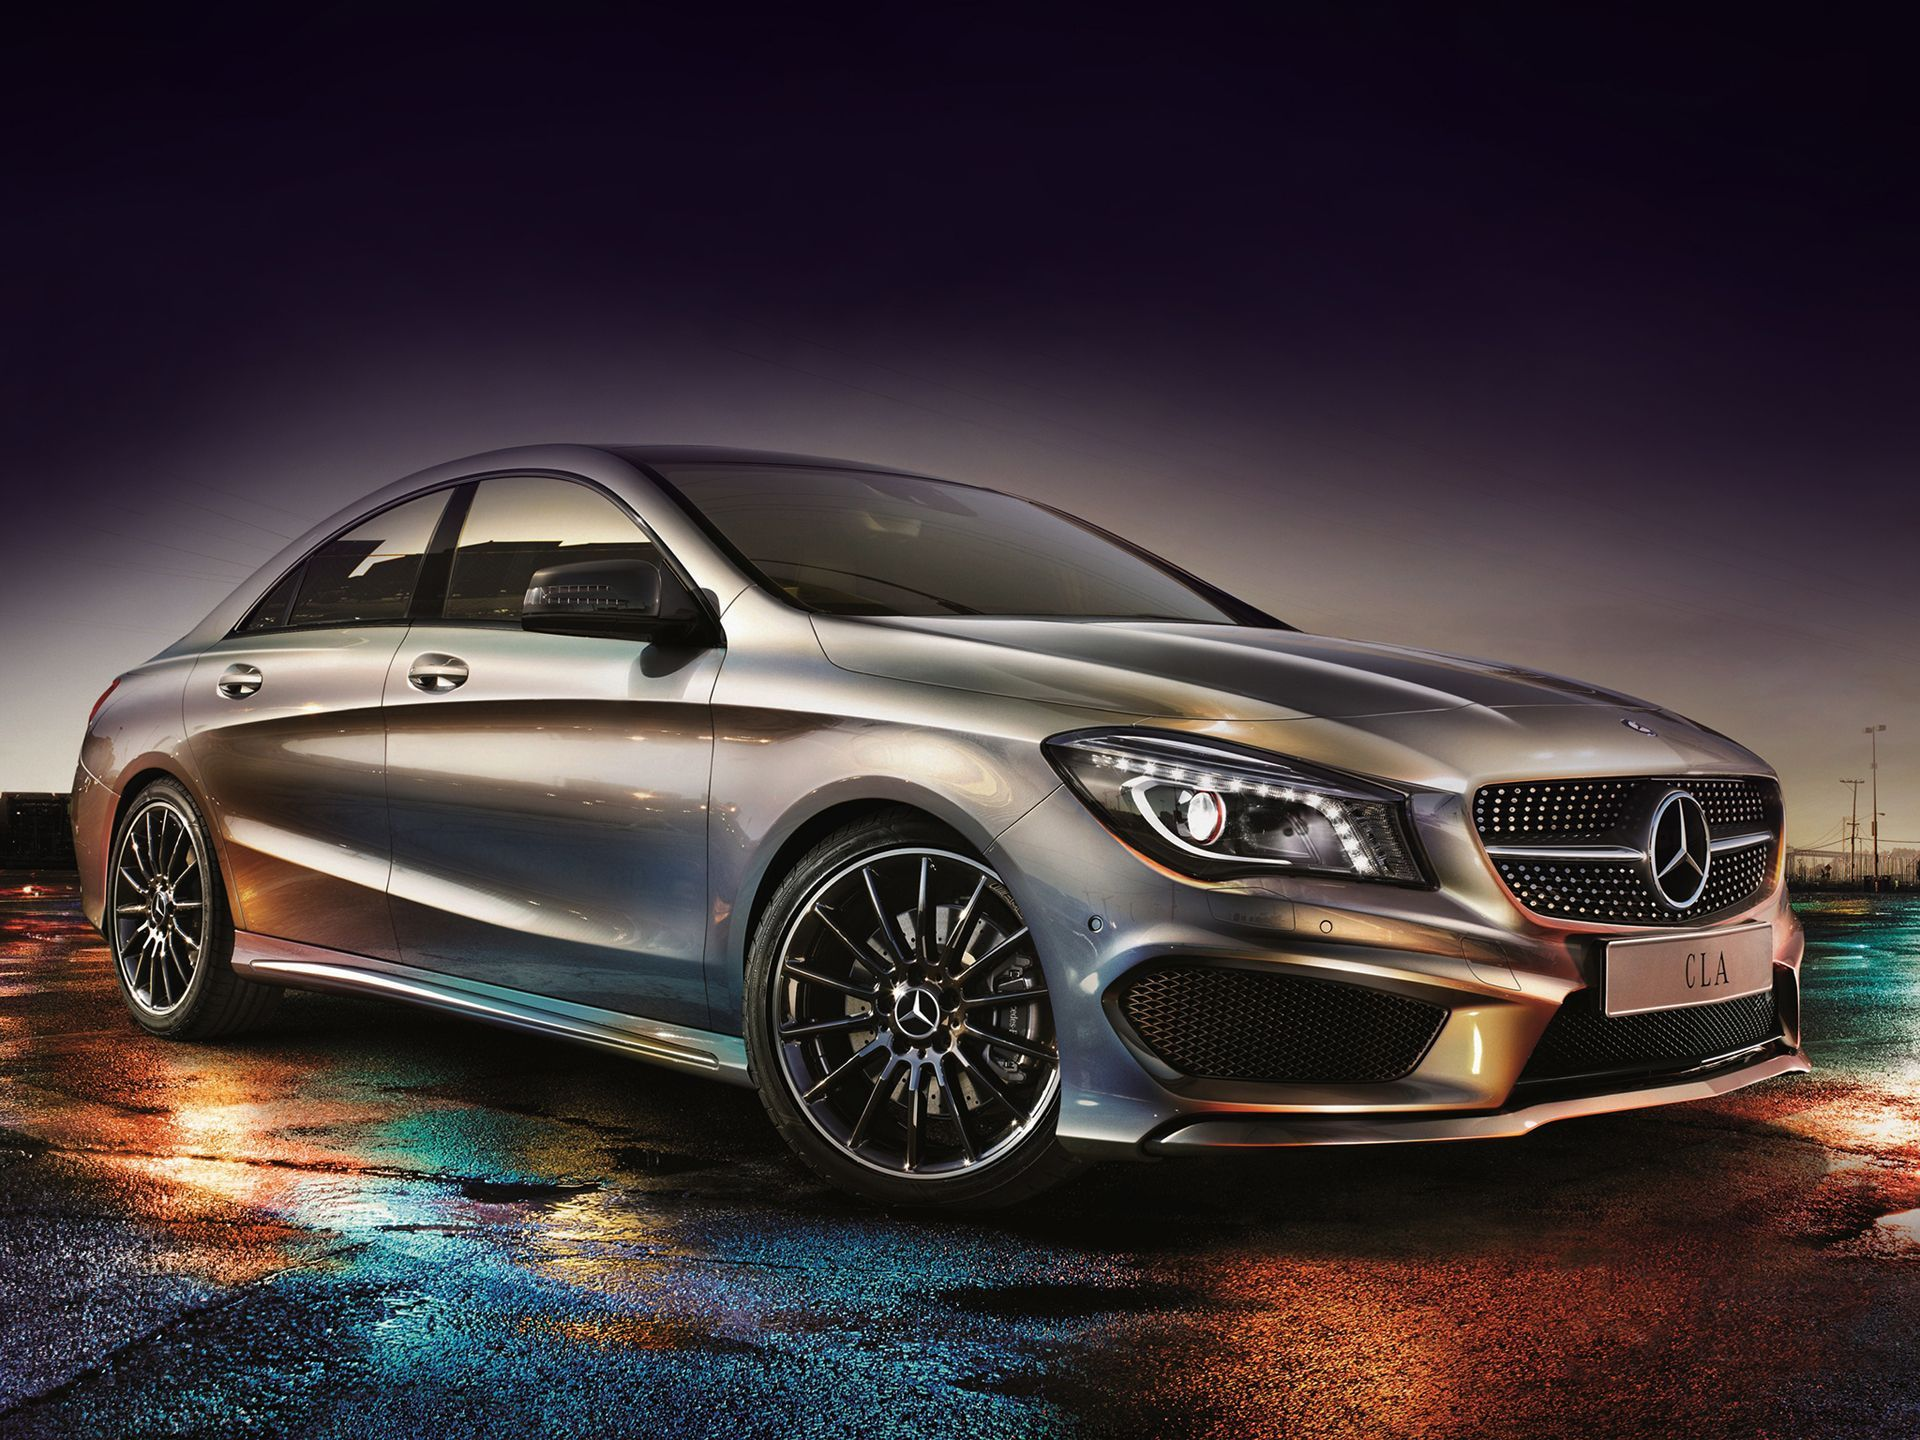 Mercedes Cla Amg Wallpaper 2 Coches Mercedes Benz Coches